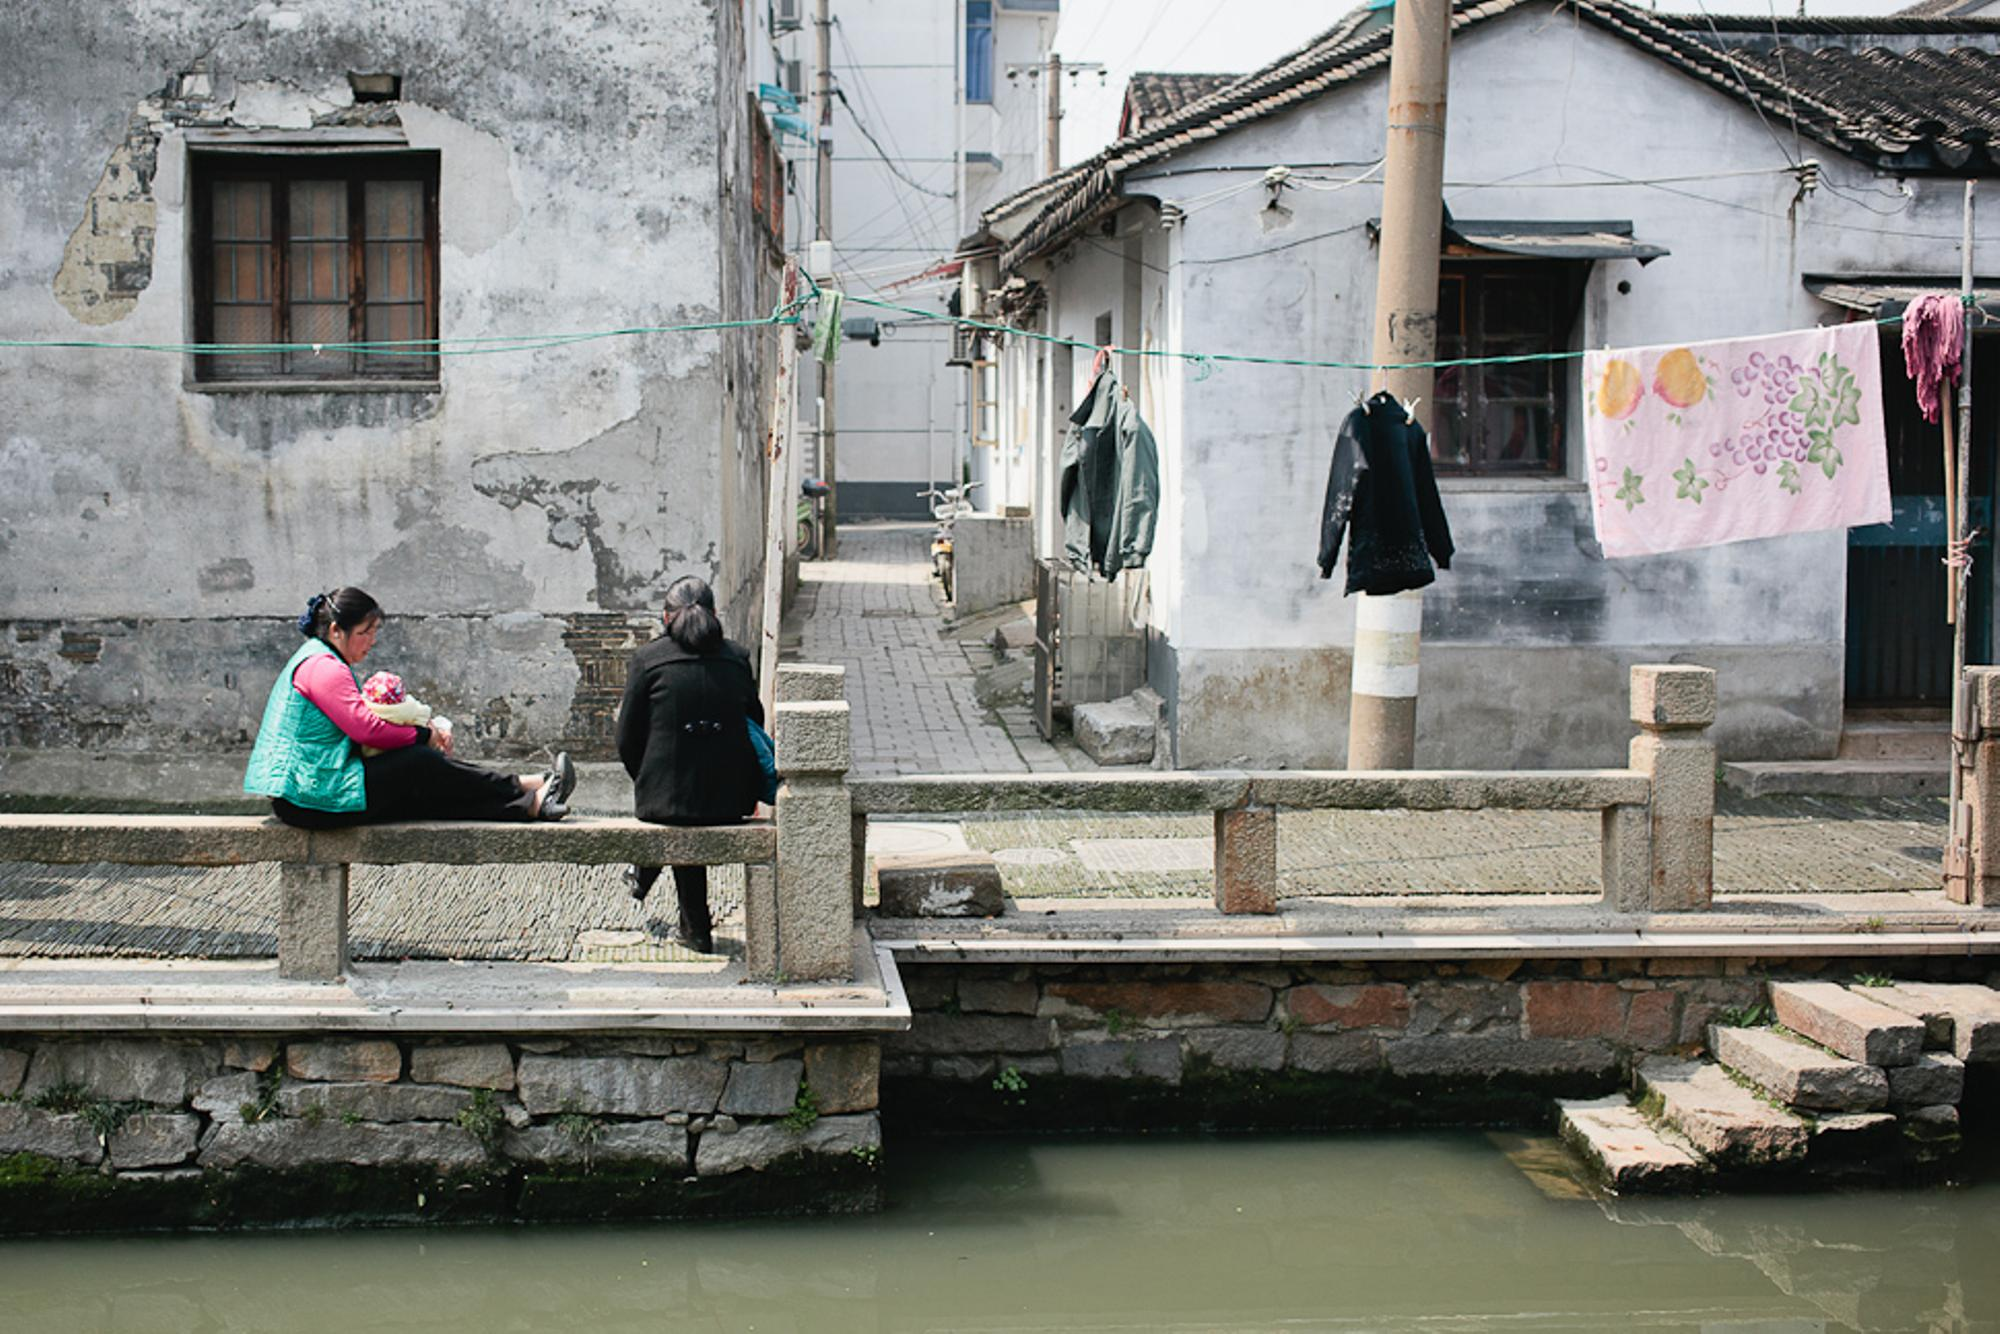 A women nurses a baby and chats alongside the dirty canal water. Why's it so dirty?